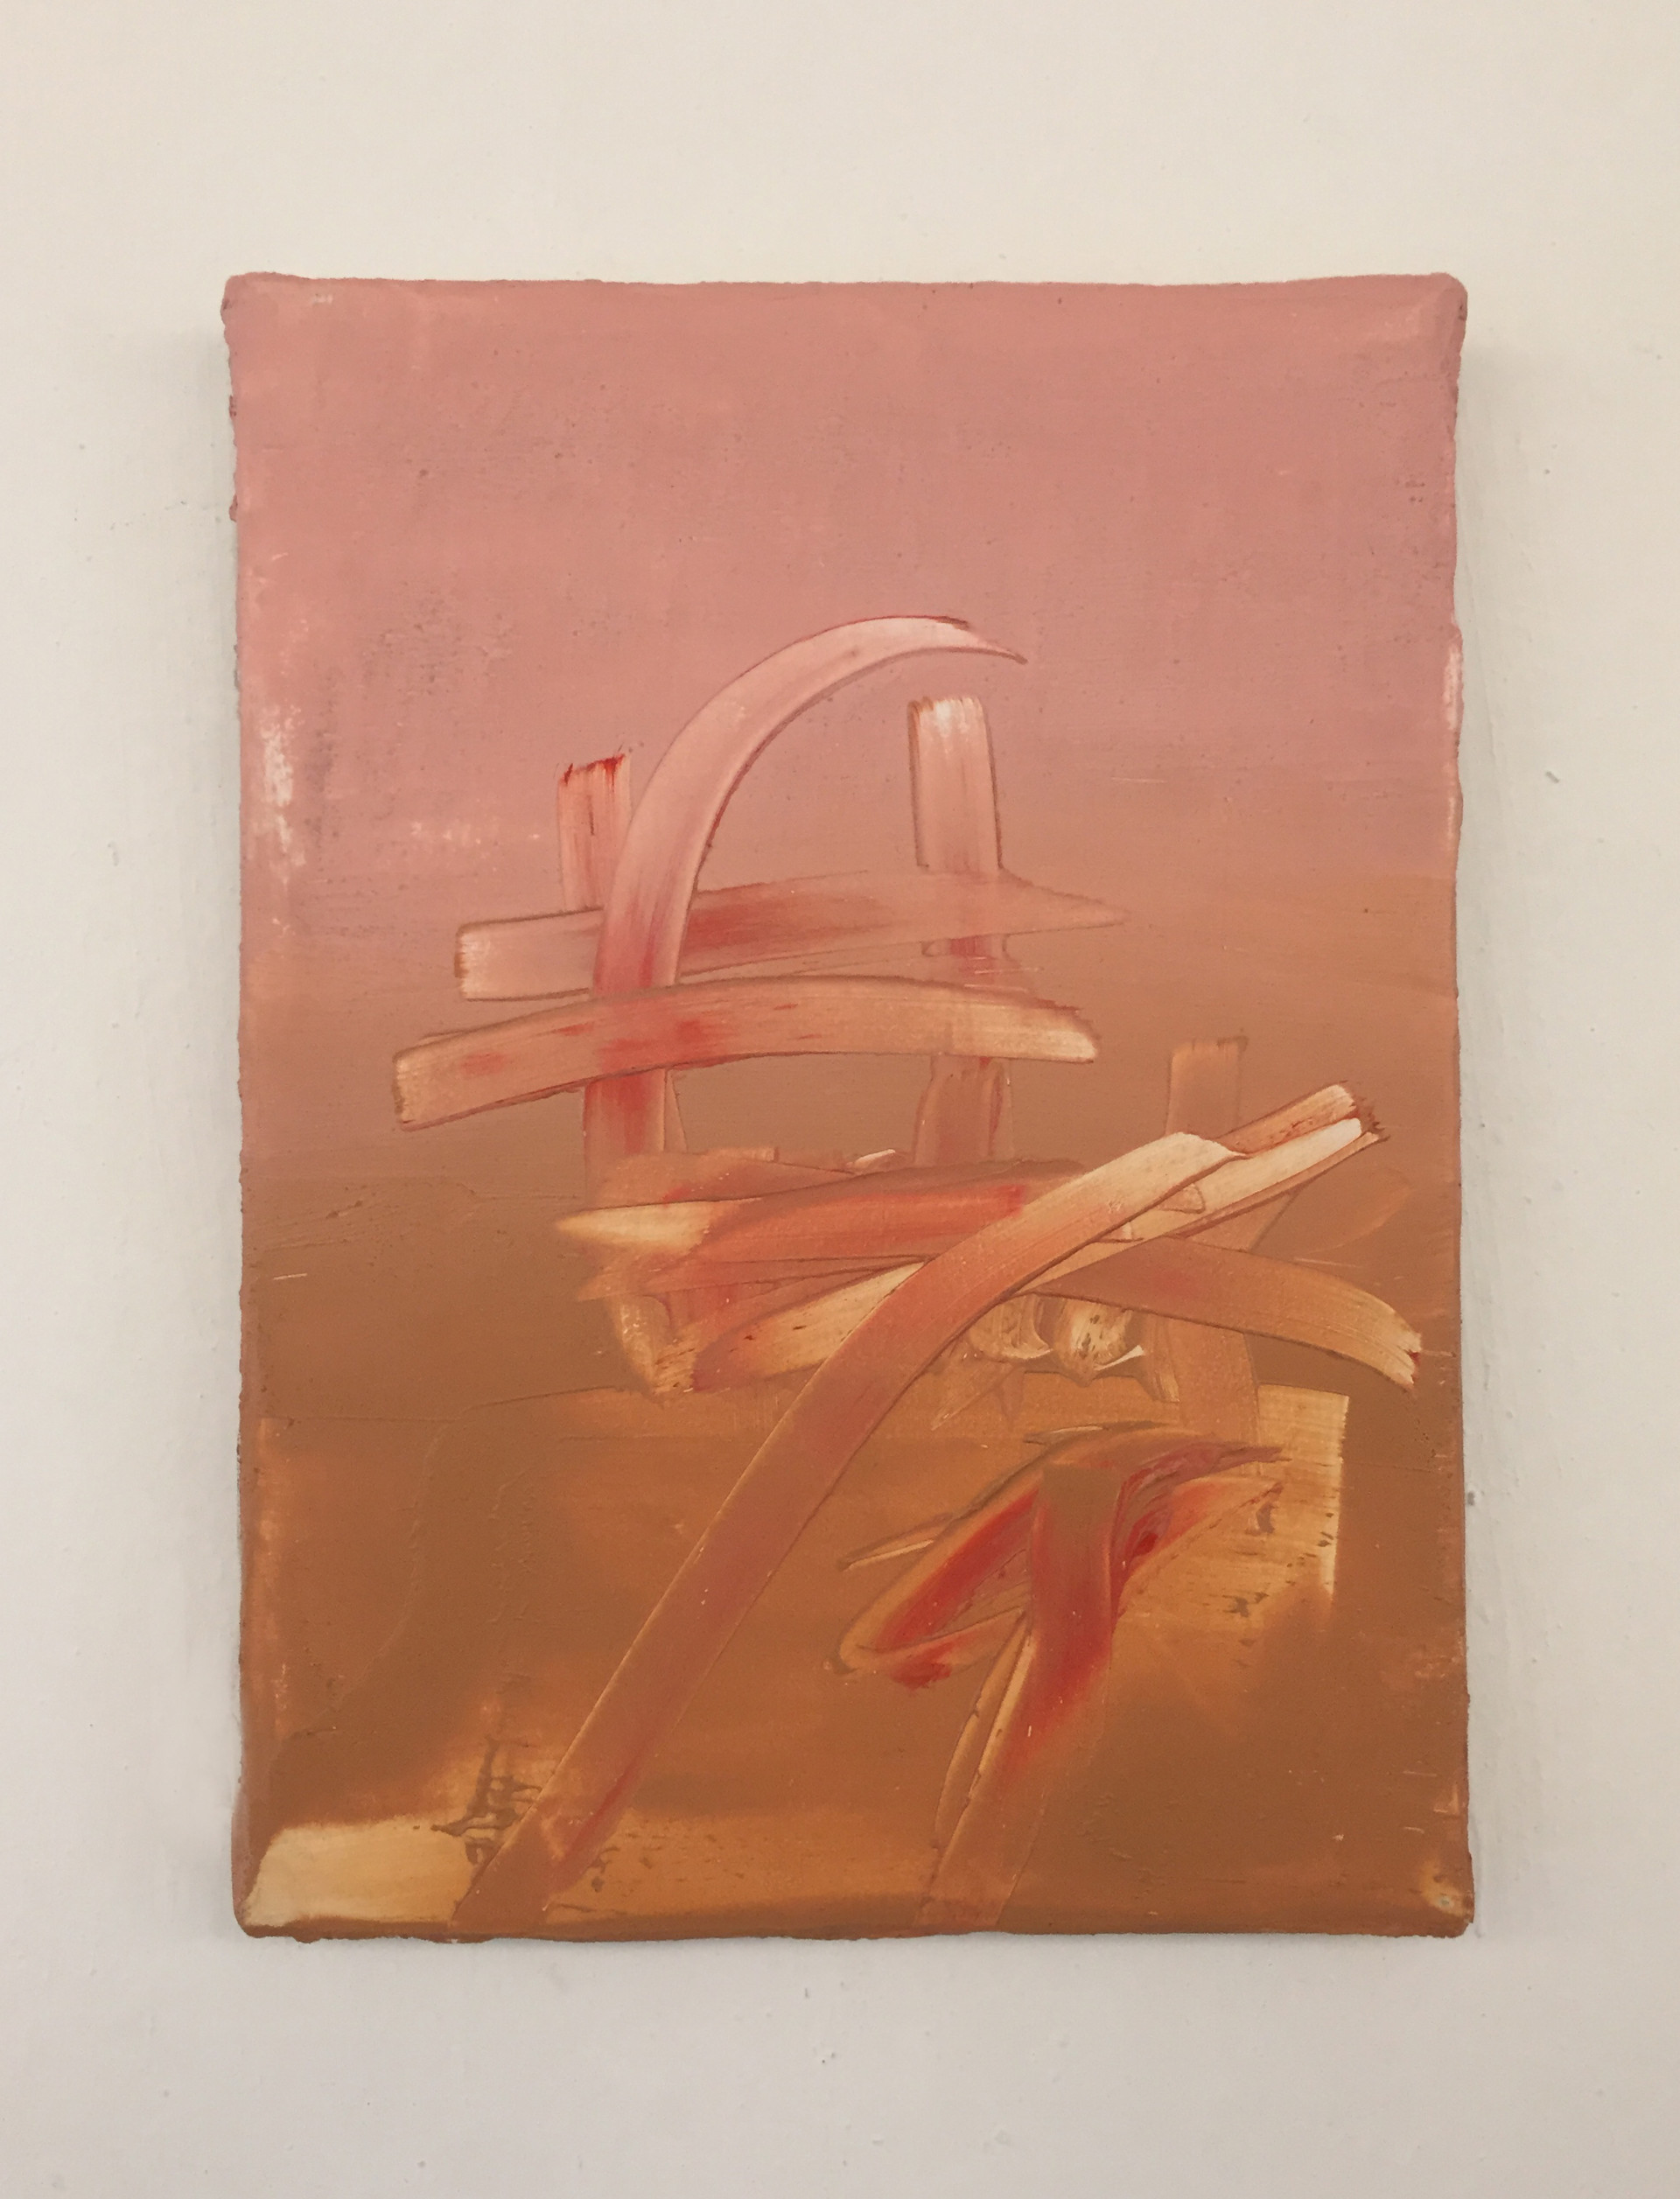 Fancy Lisptick, 2015 | Oil on canvas | 22 x 16 cm